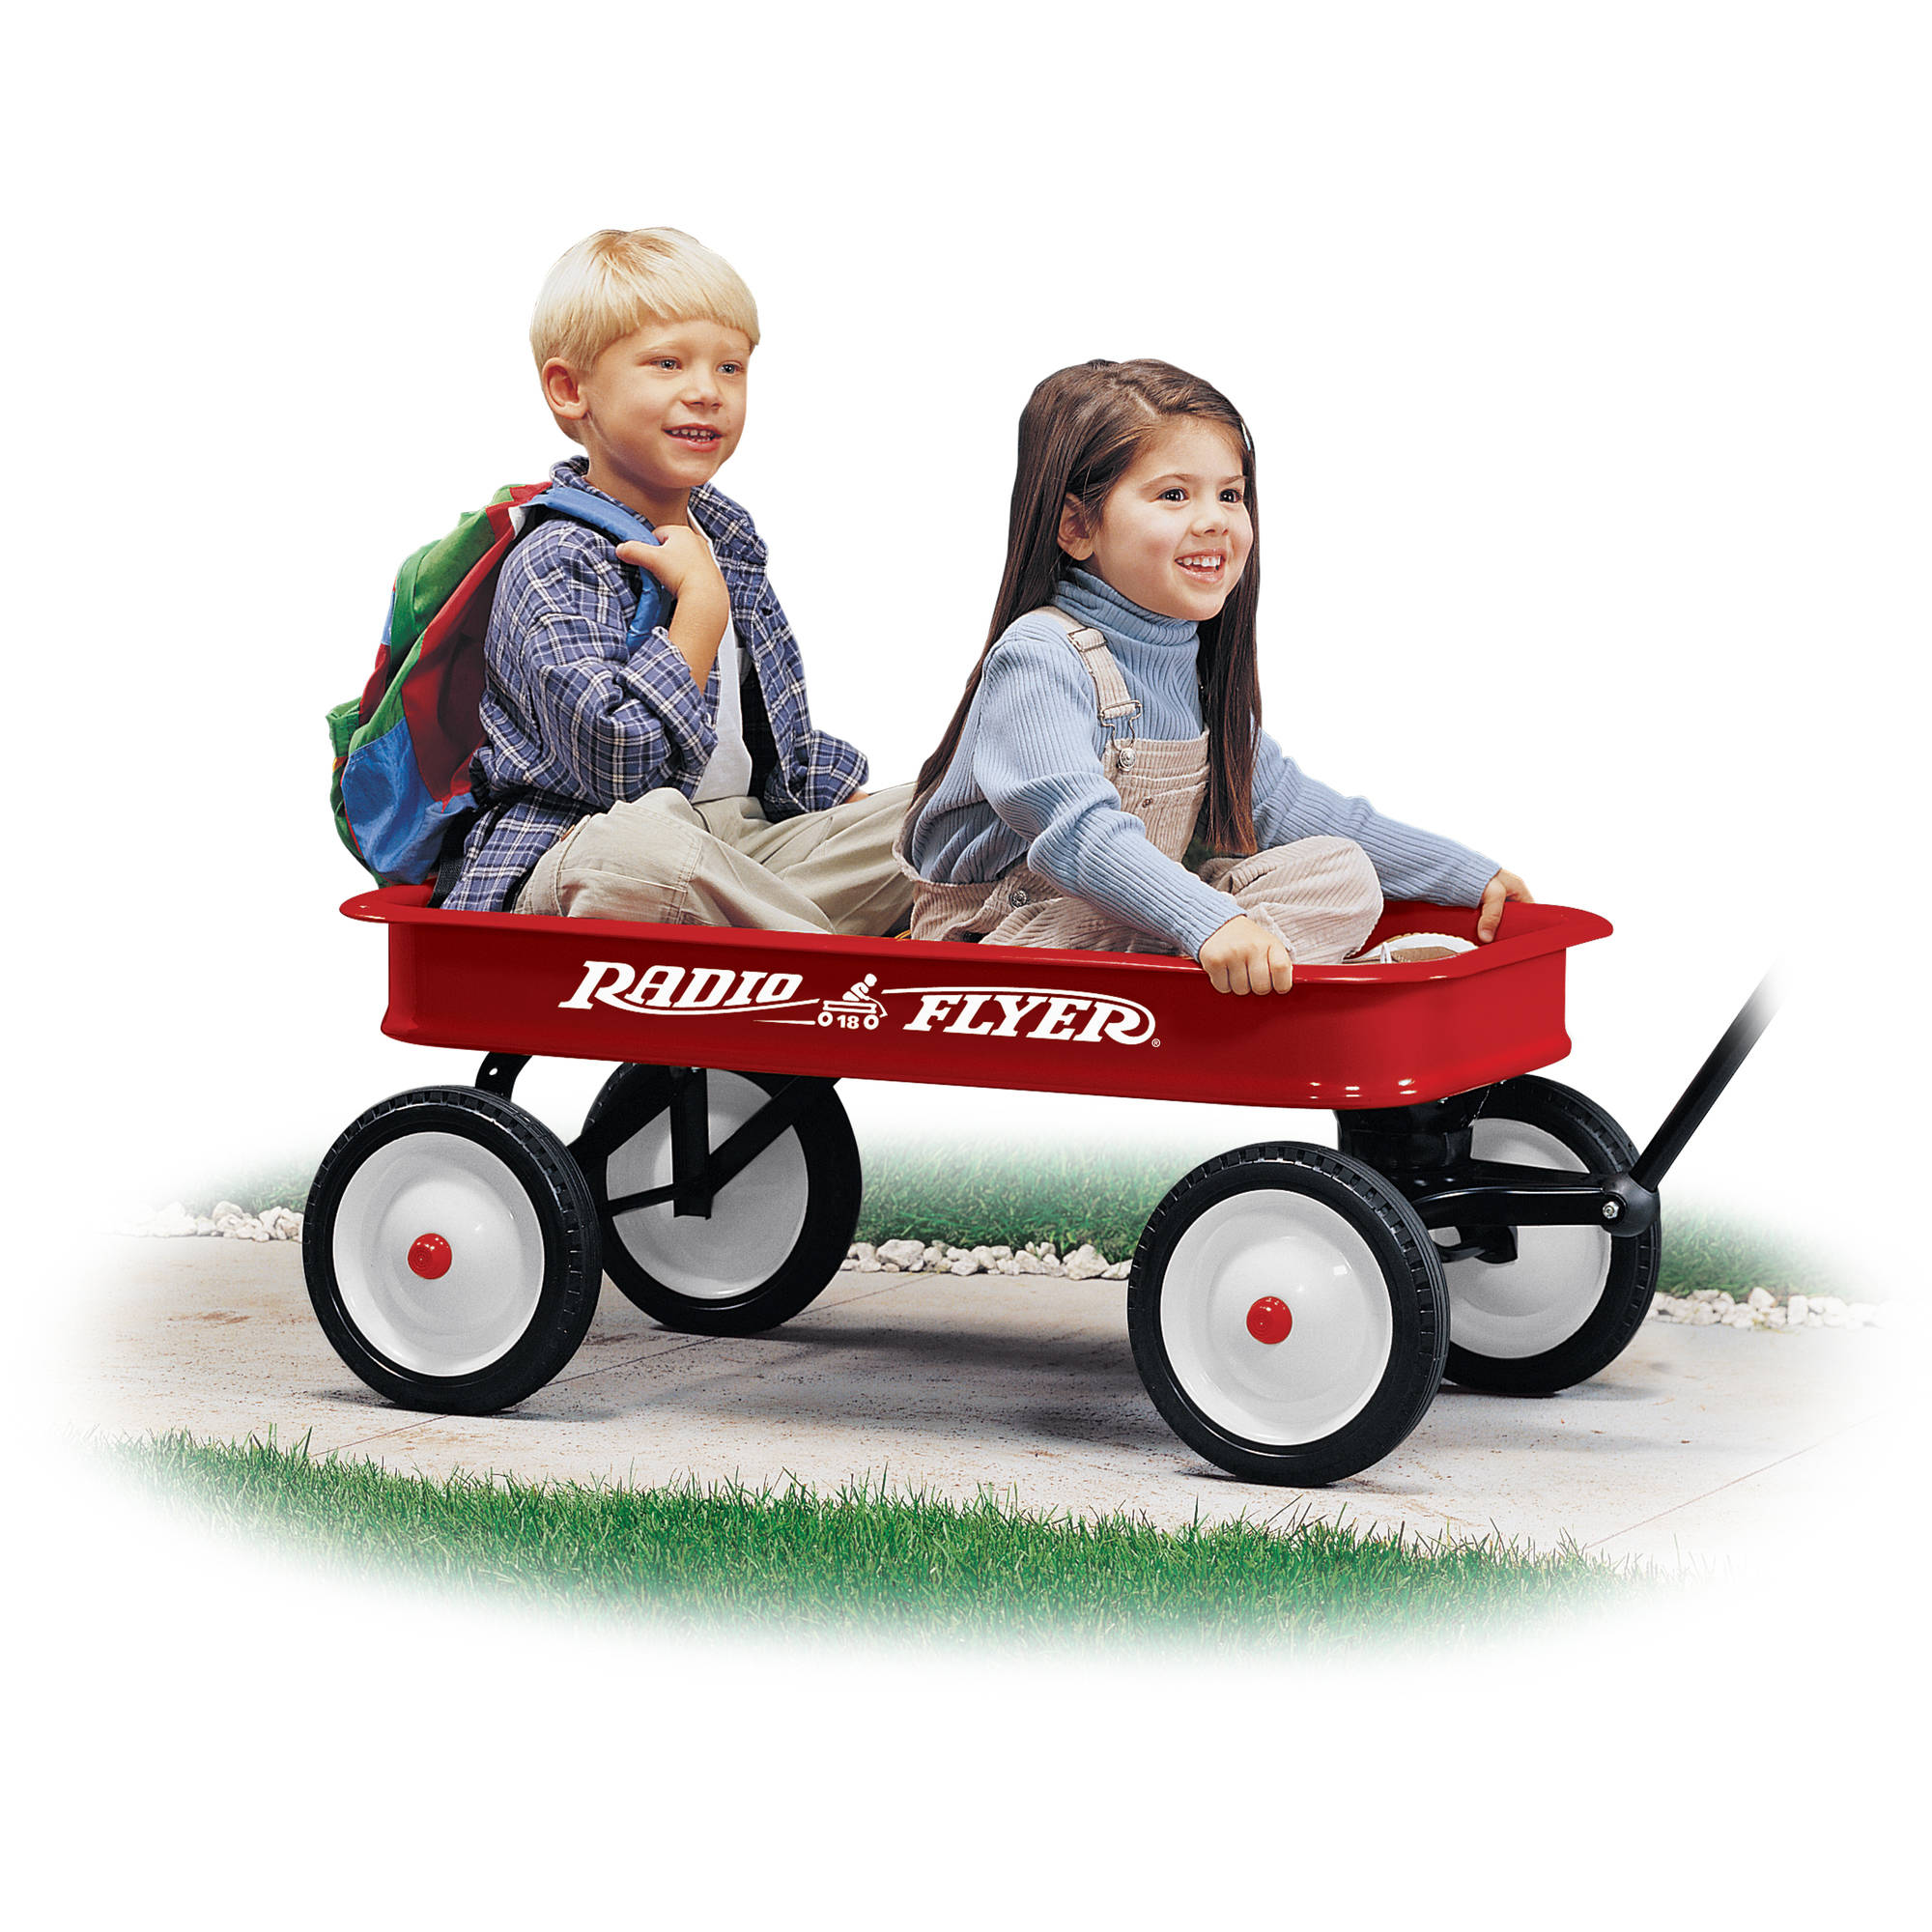 Radio Flyer Original Classic Red Wagon Steel Body Red Walmart Com Walmart Com